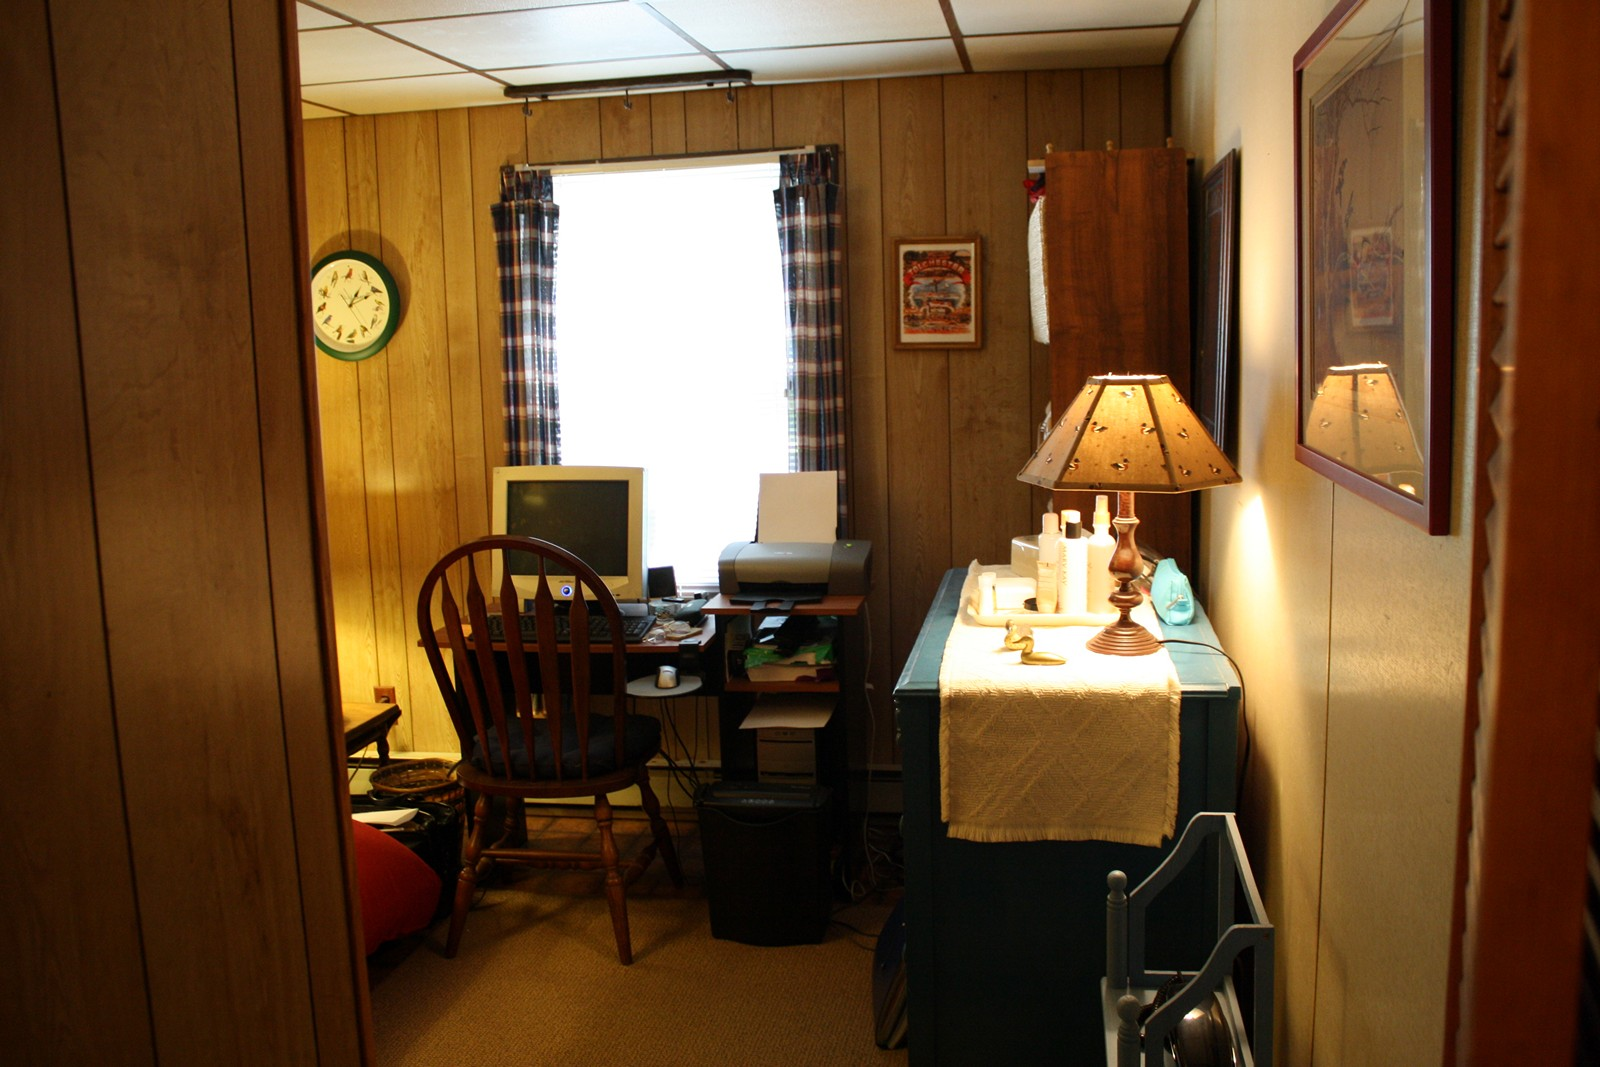 Kass's study at Maryland house